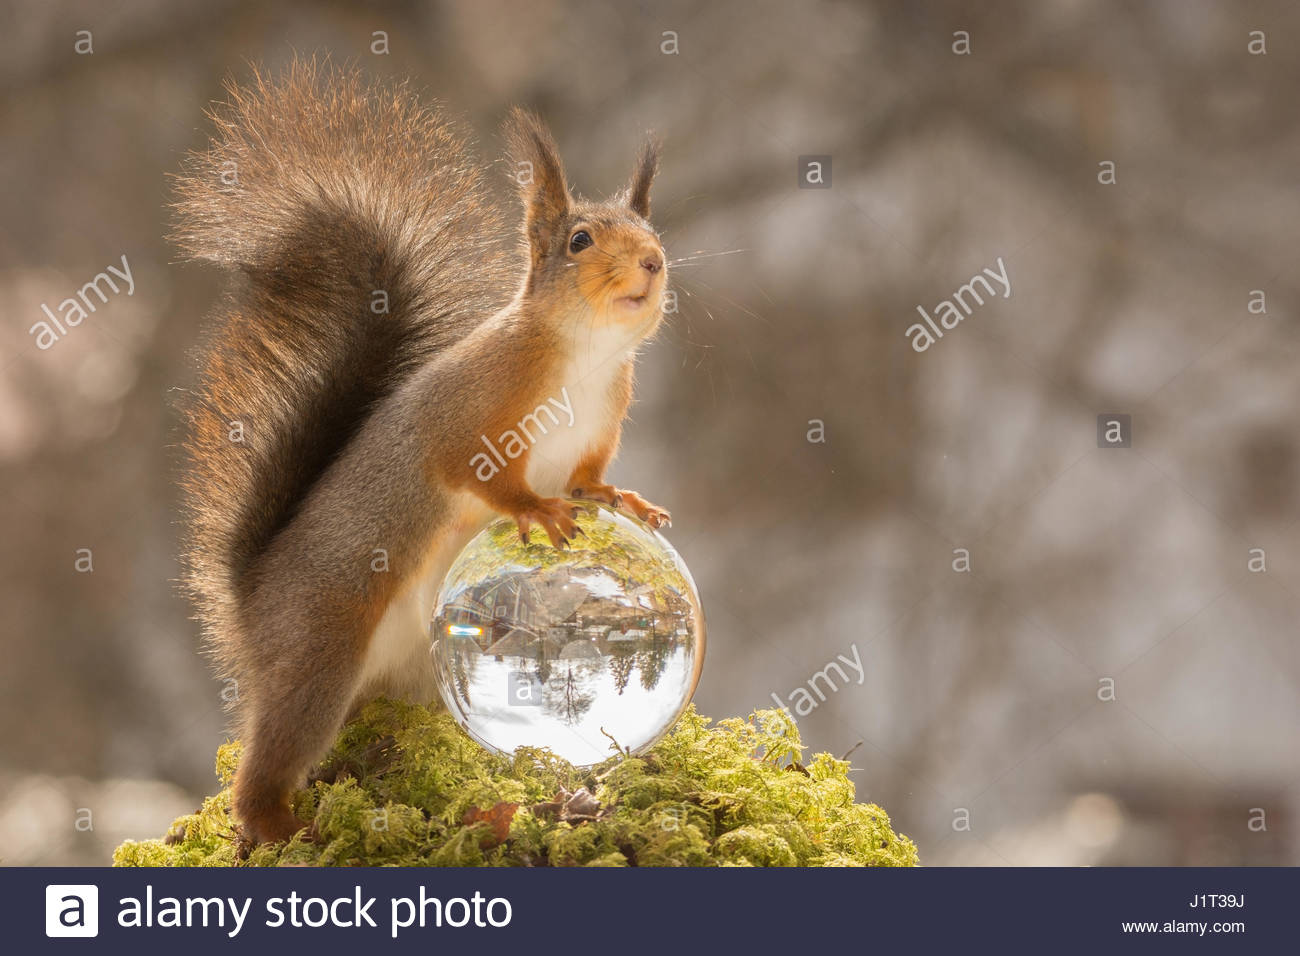 red squirrel holding on to a crystal ball looking up - Stock Image